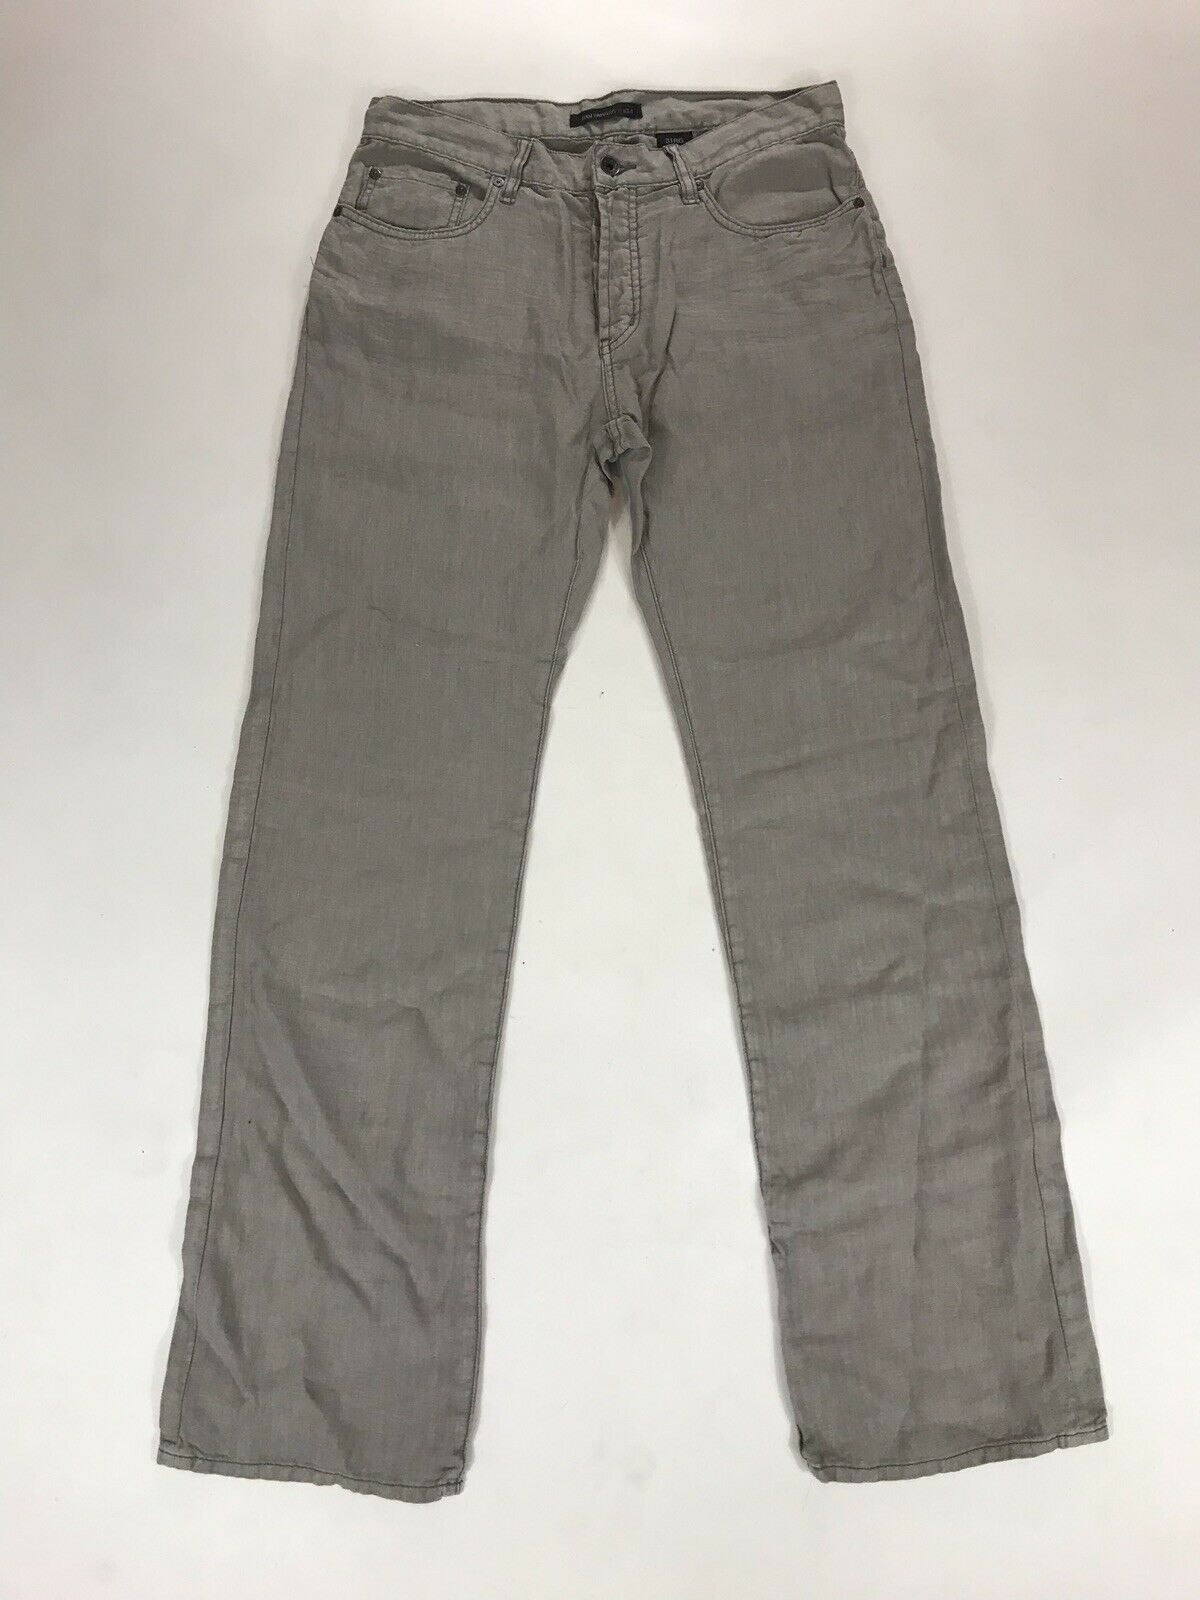 NWT John Varvatos Mens Star USA Straight Leg Jeans Authentic Fit Size 31